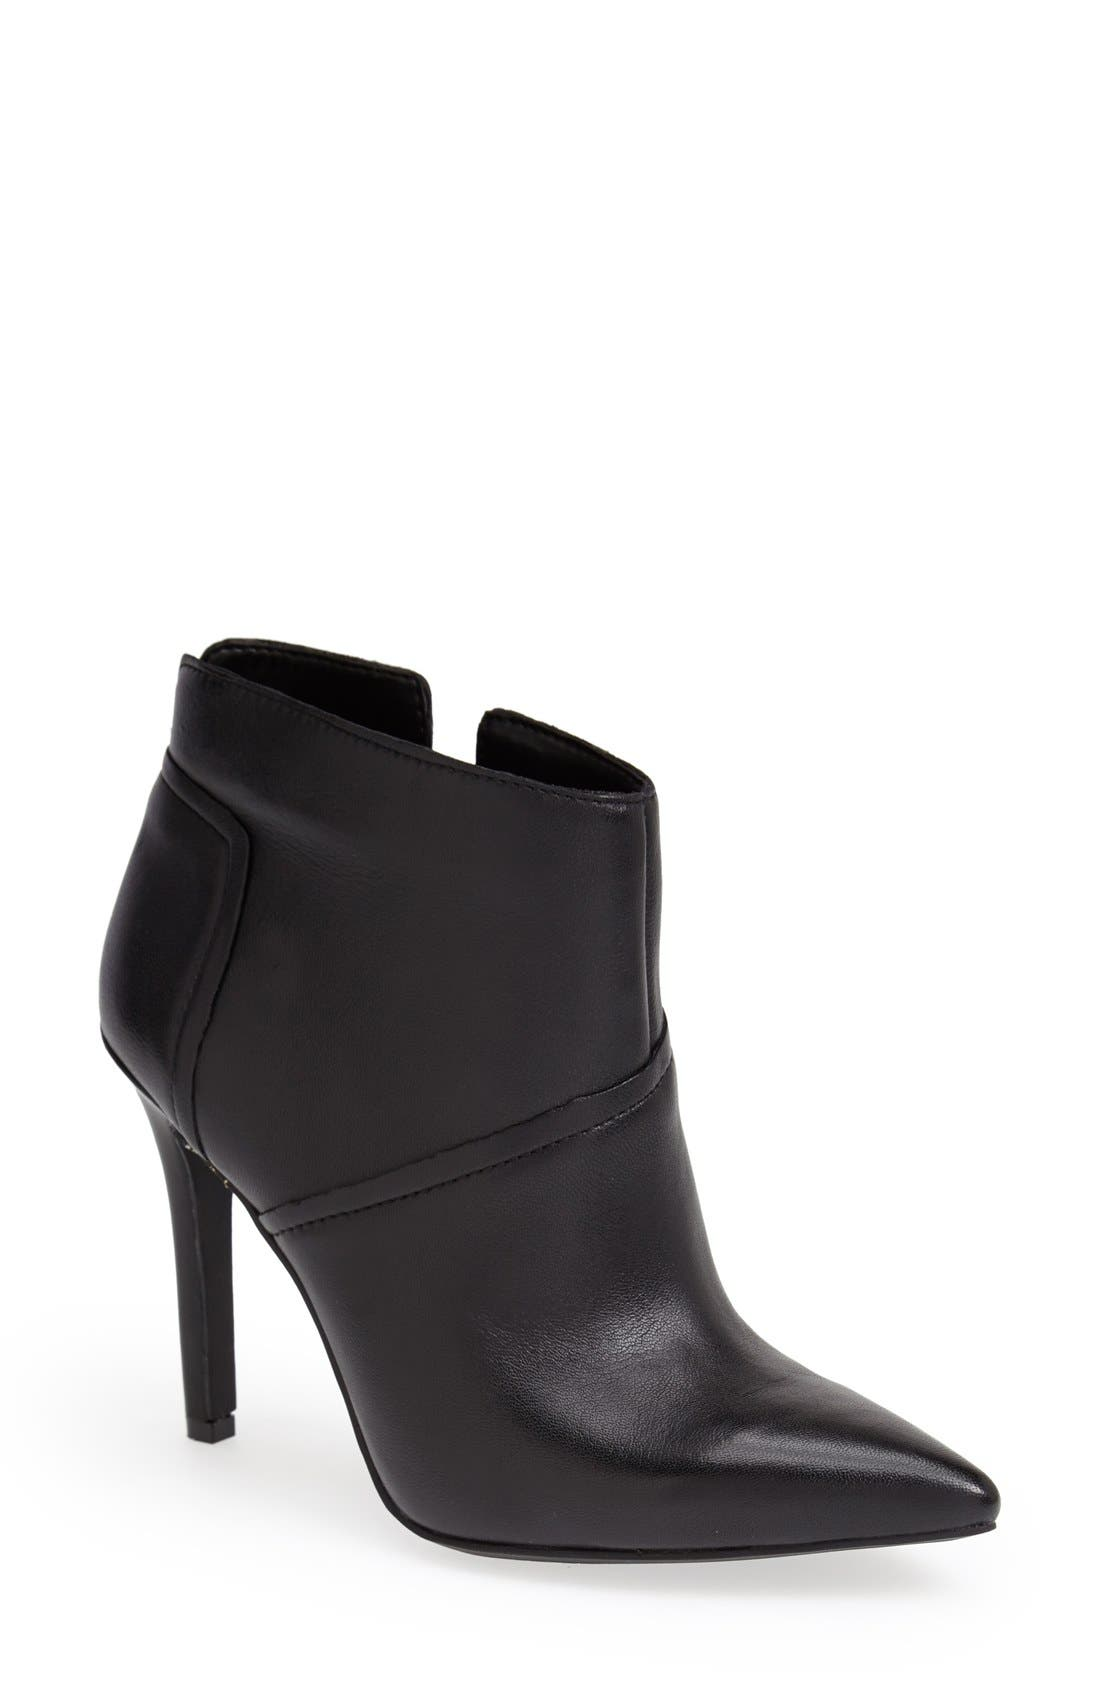 Alternate Image 1 Selected - Jessica Simpson 'Coolen' Pointy Toe Bootie (Women)